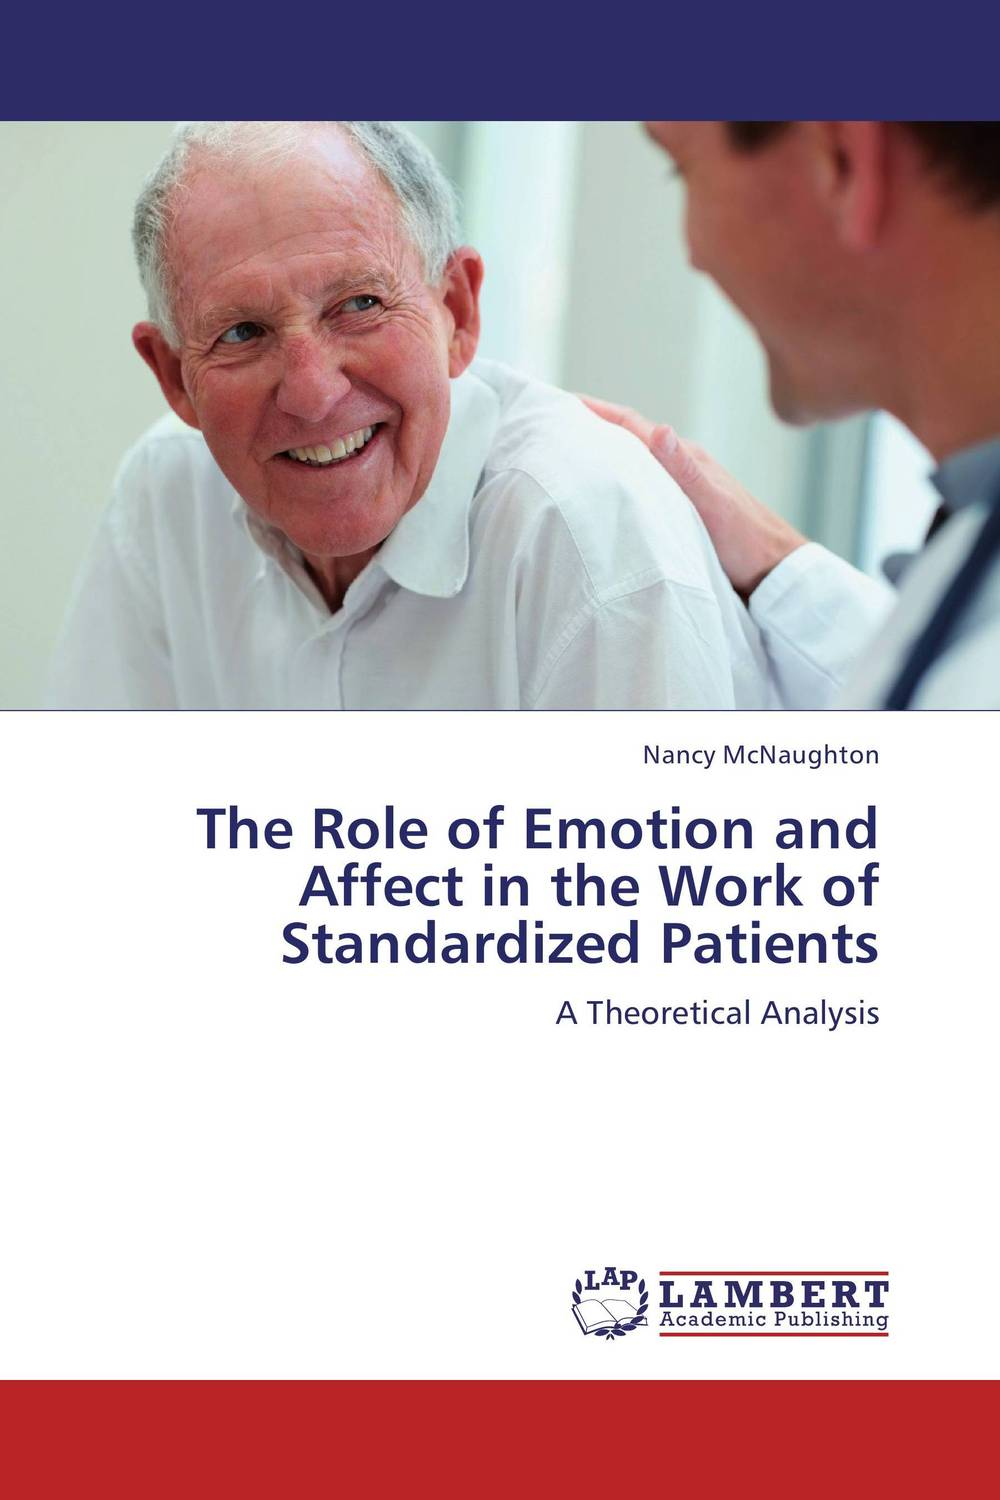 The Role of Emotion and Affect in the Work of Standardized Patients the role of absurdity within english humour